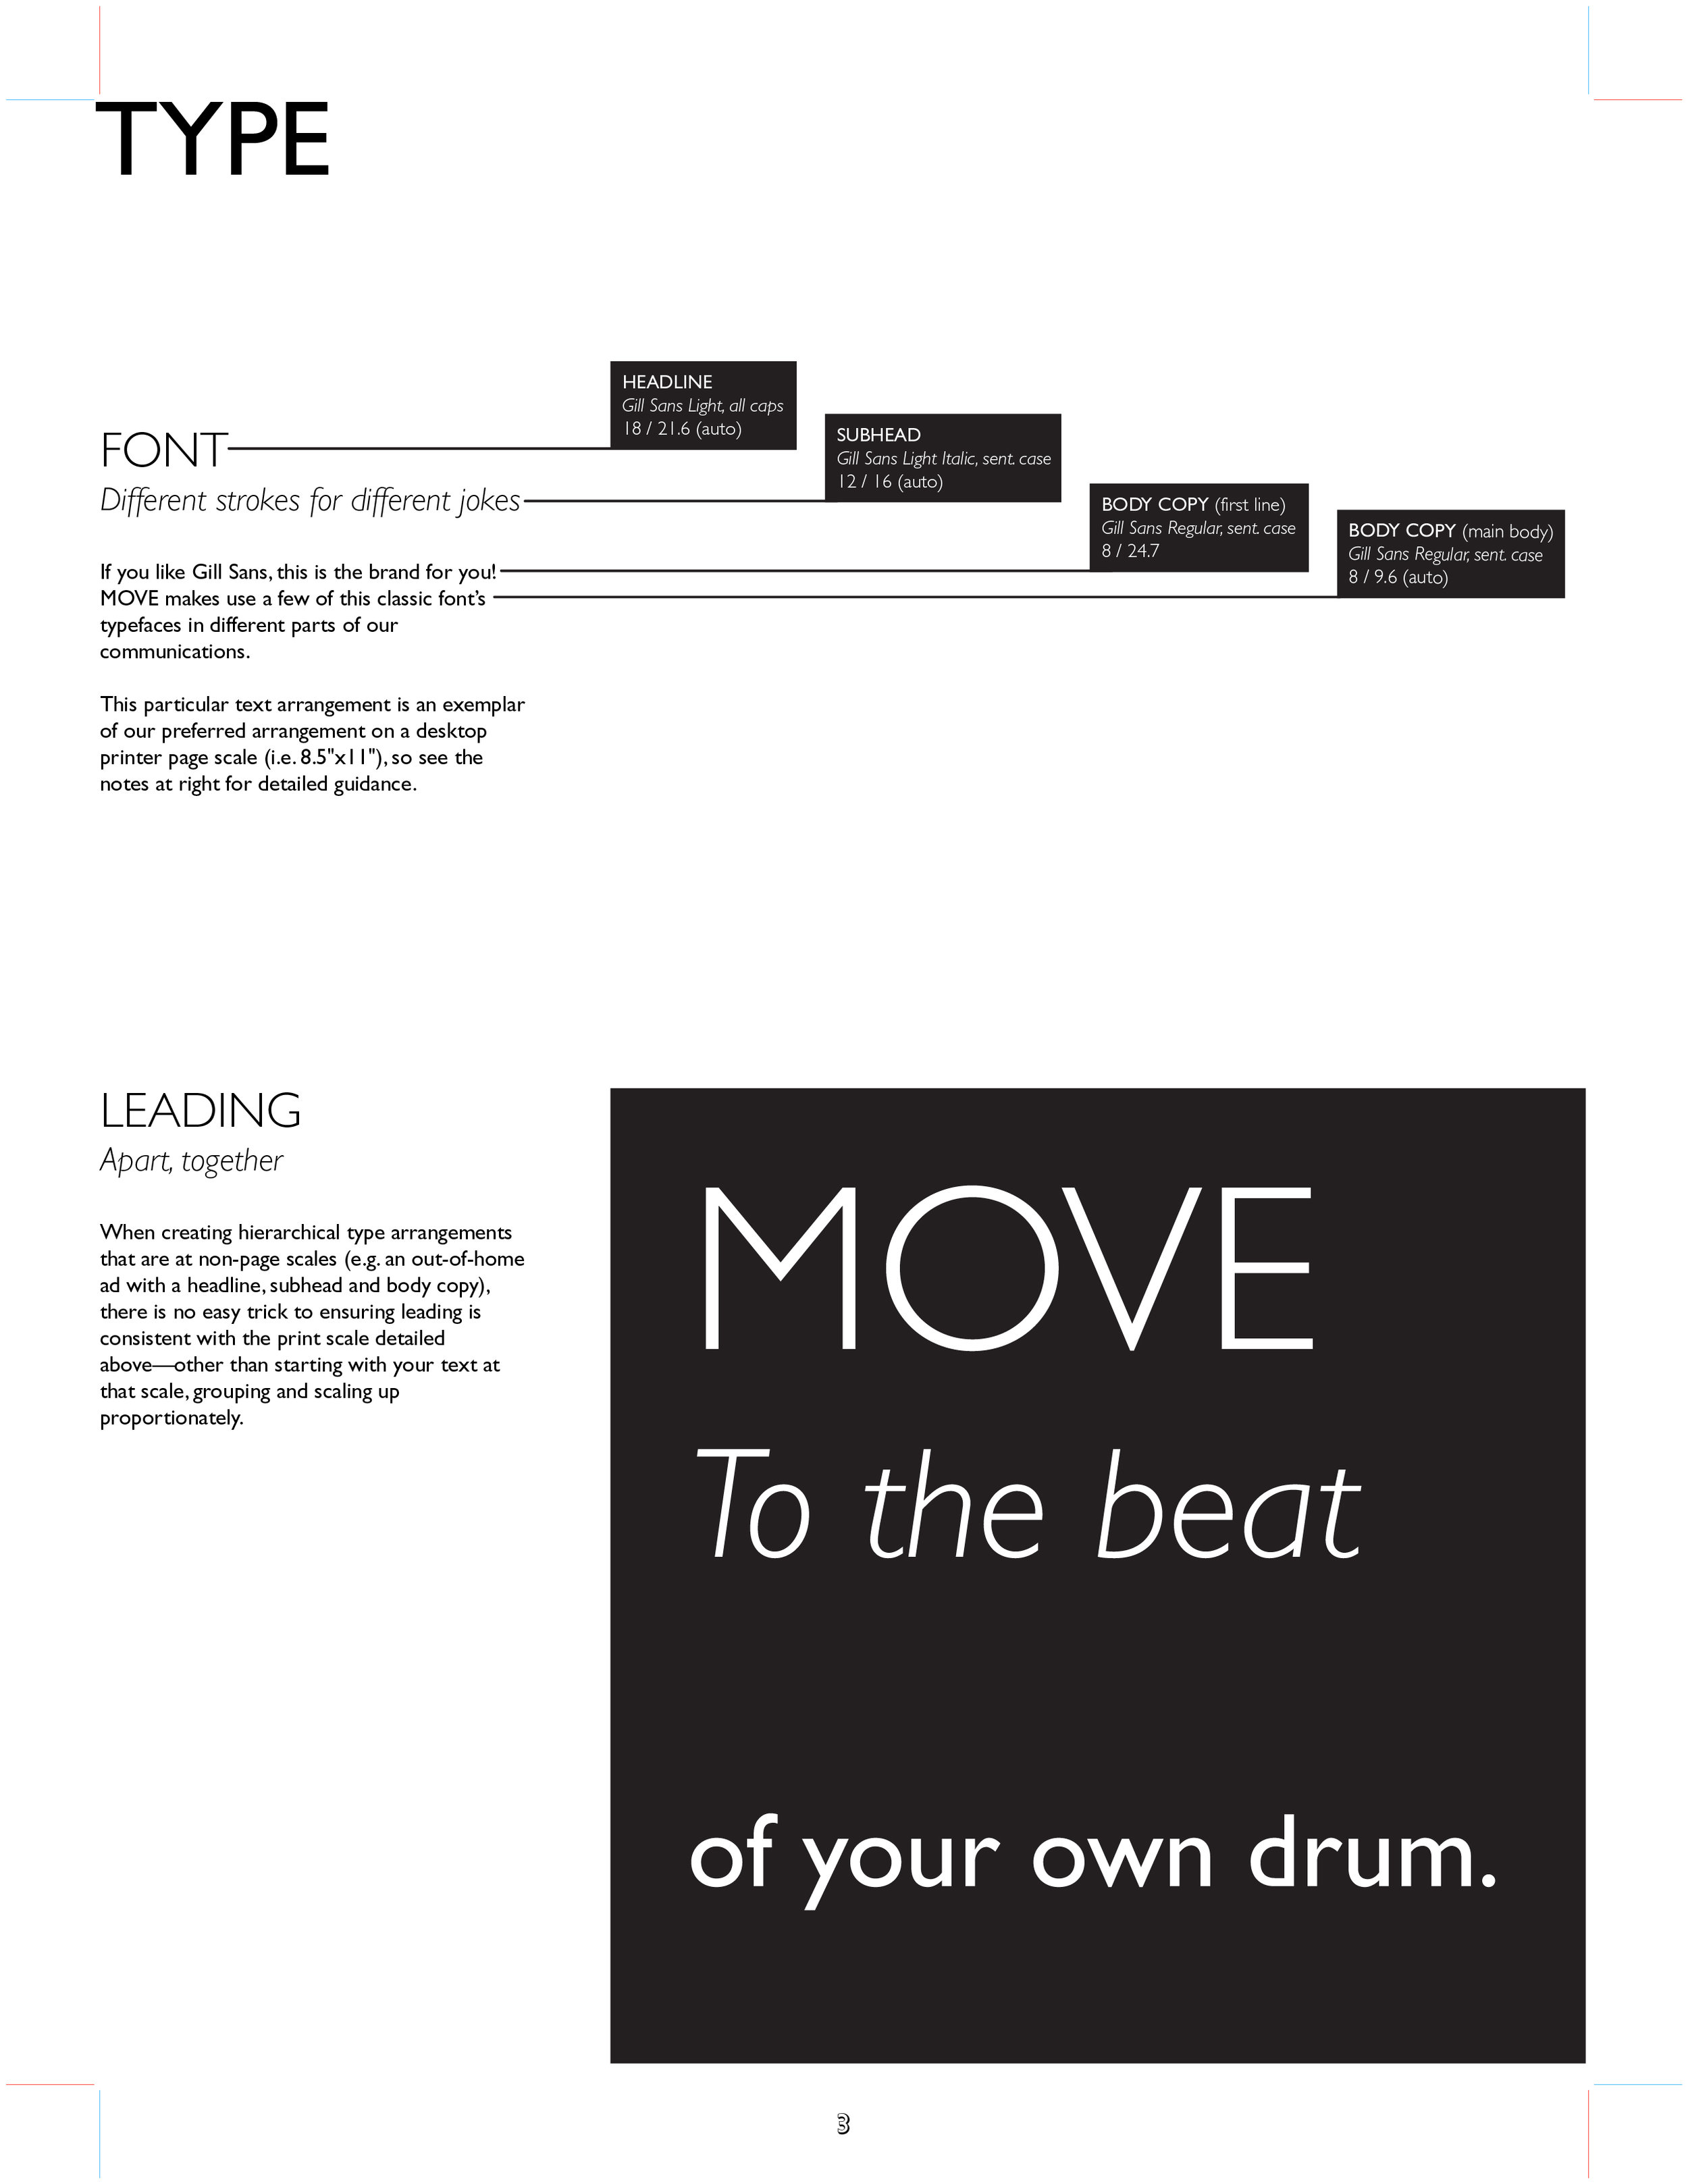 MOVE Brand Guidelines-04.jpg